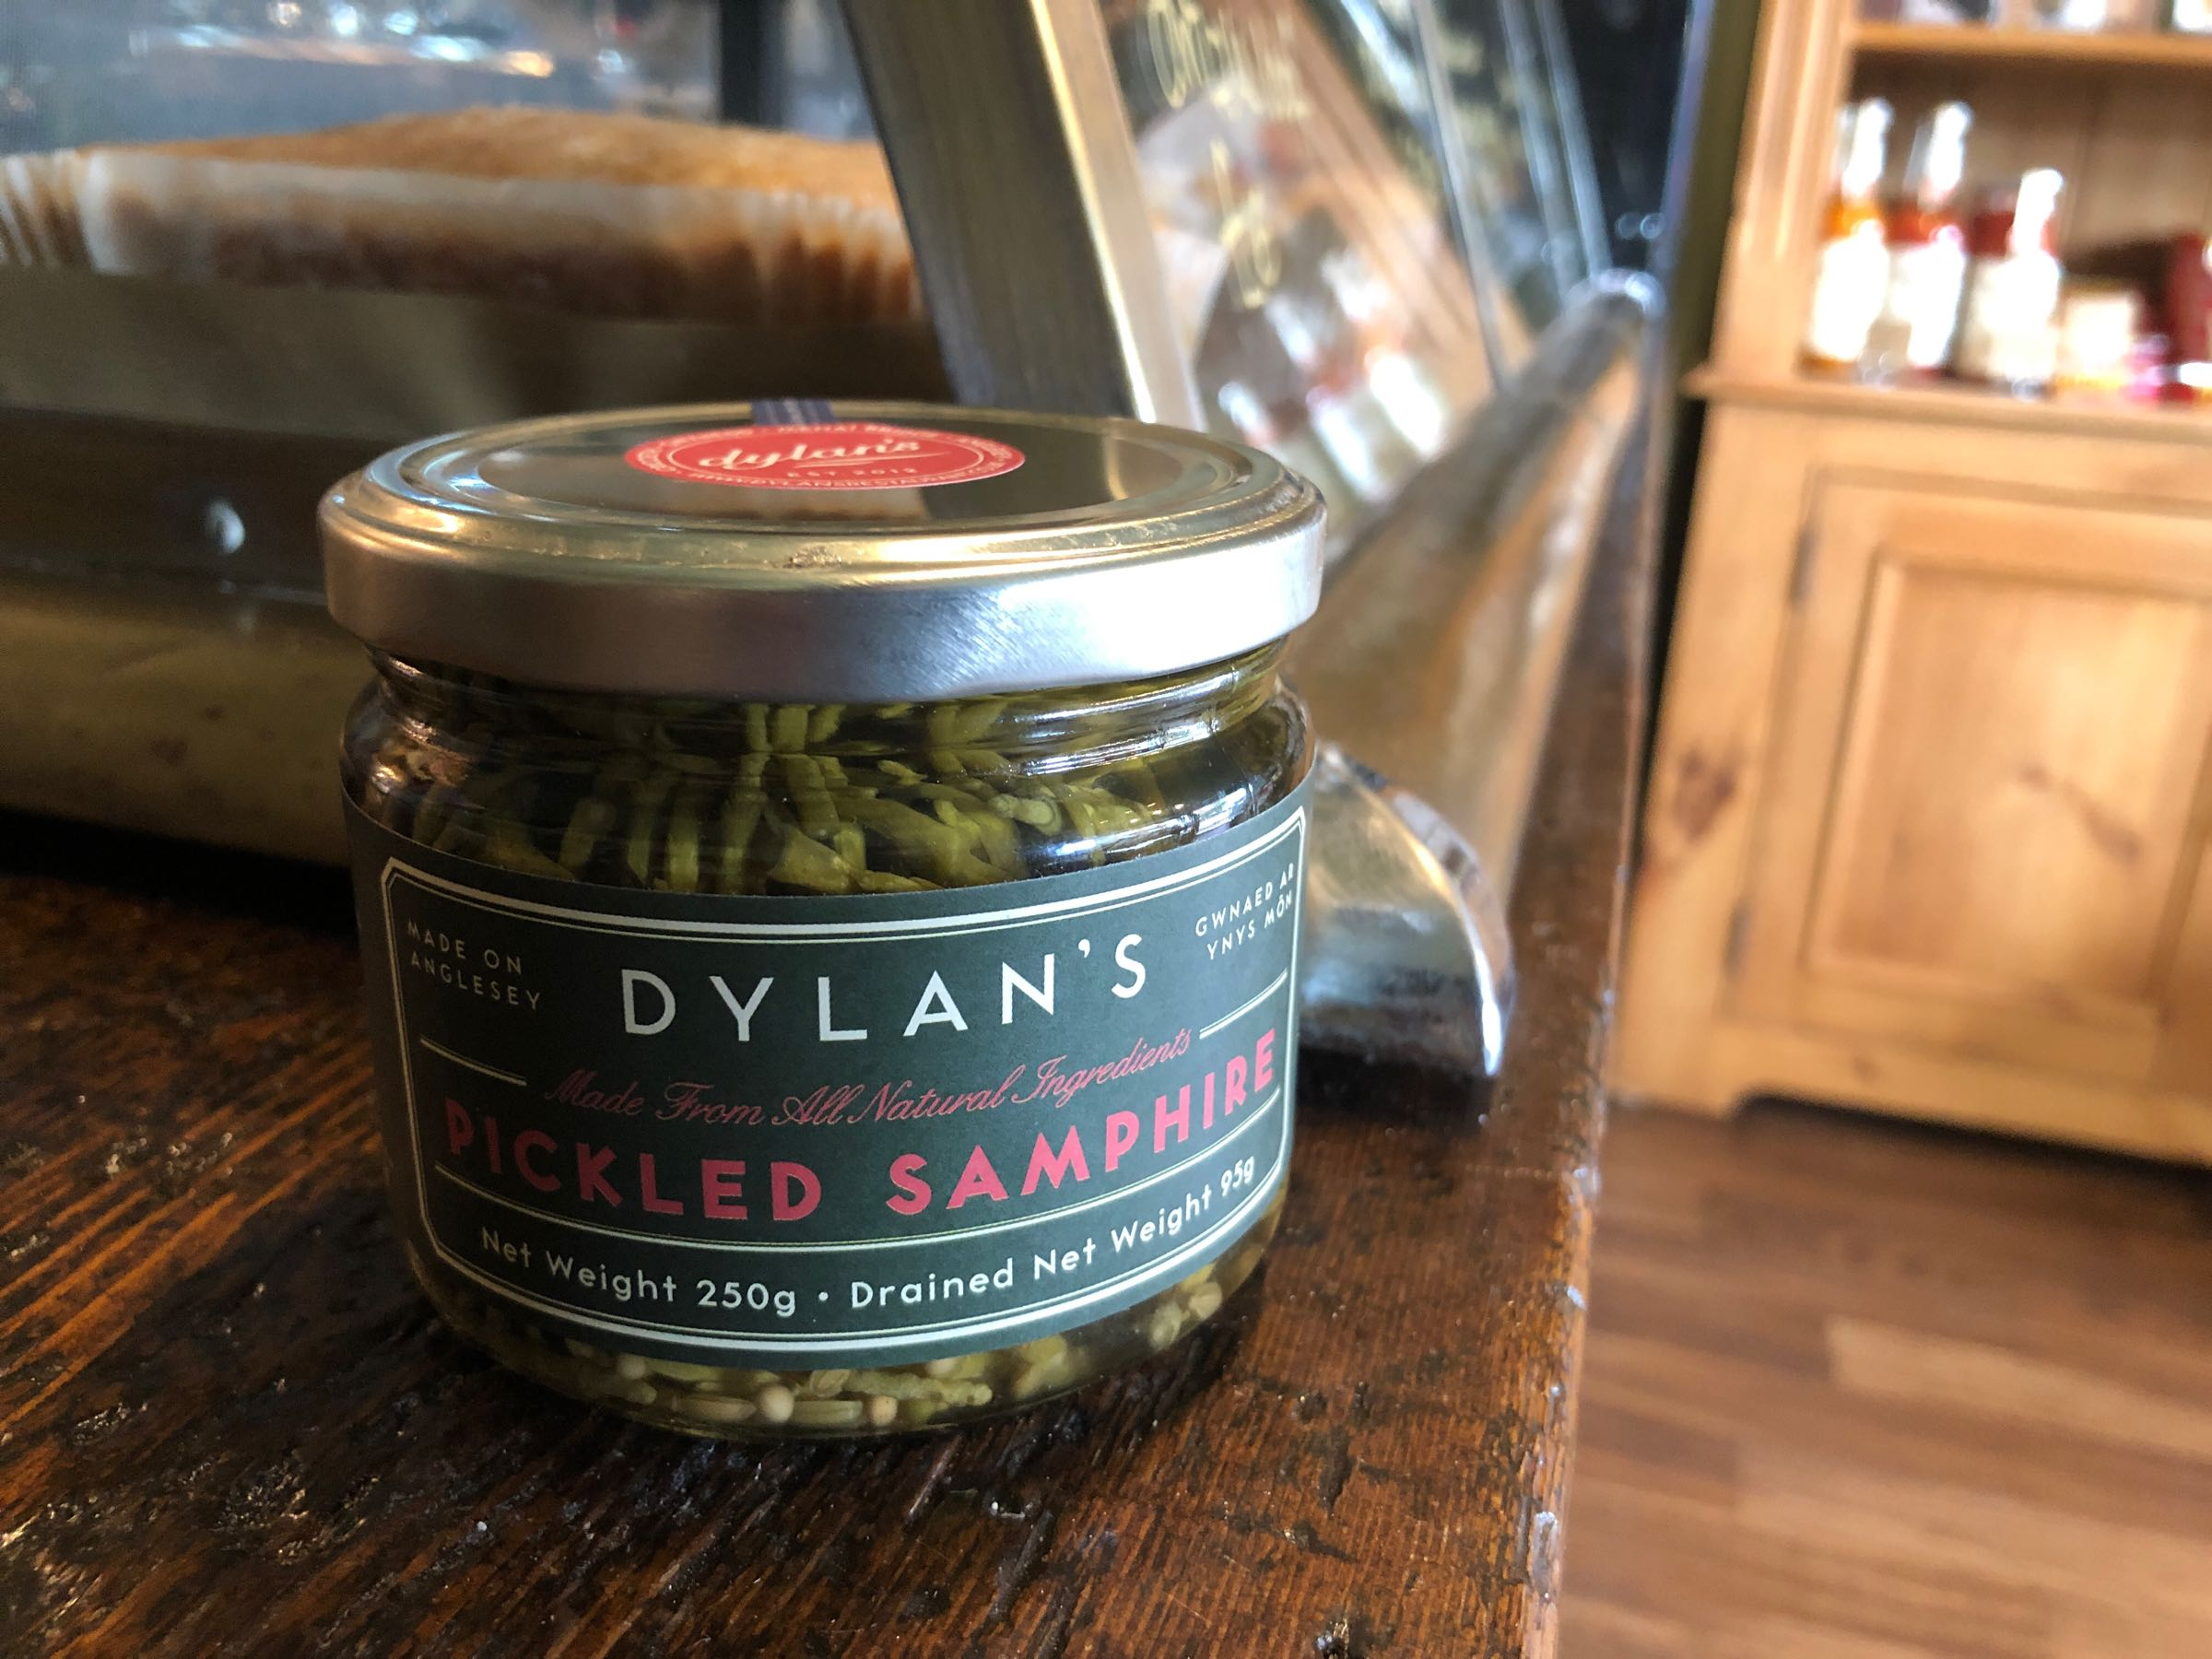 Dylan's Pickled Samphire